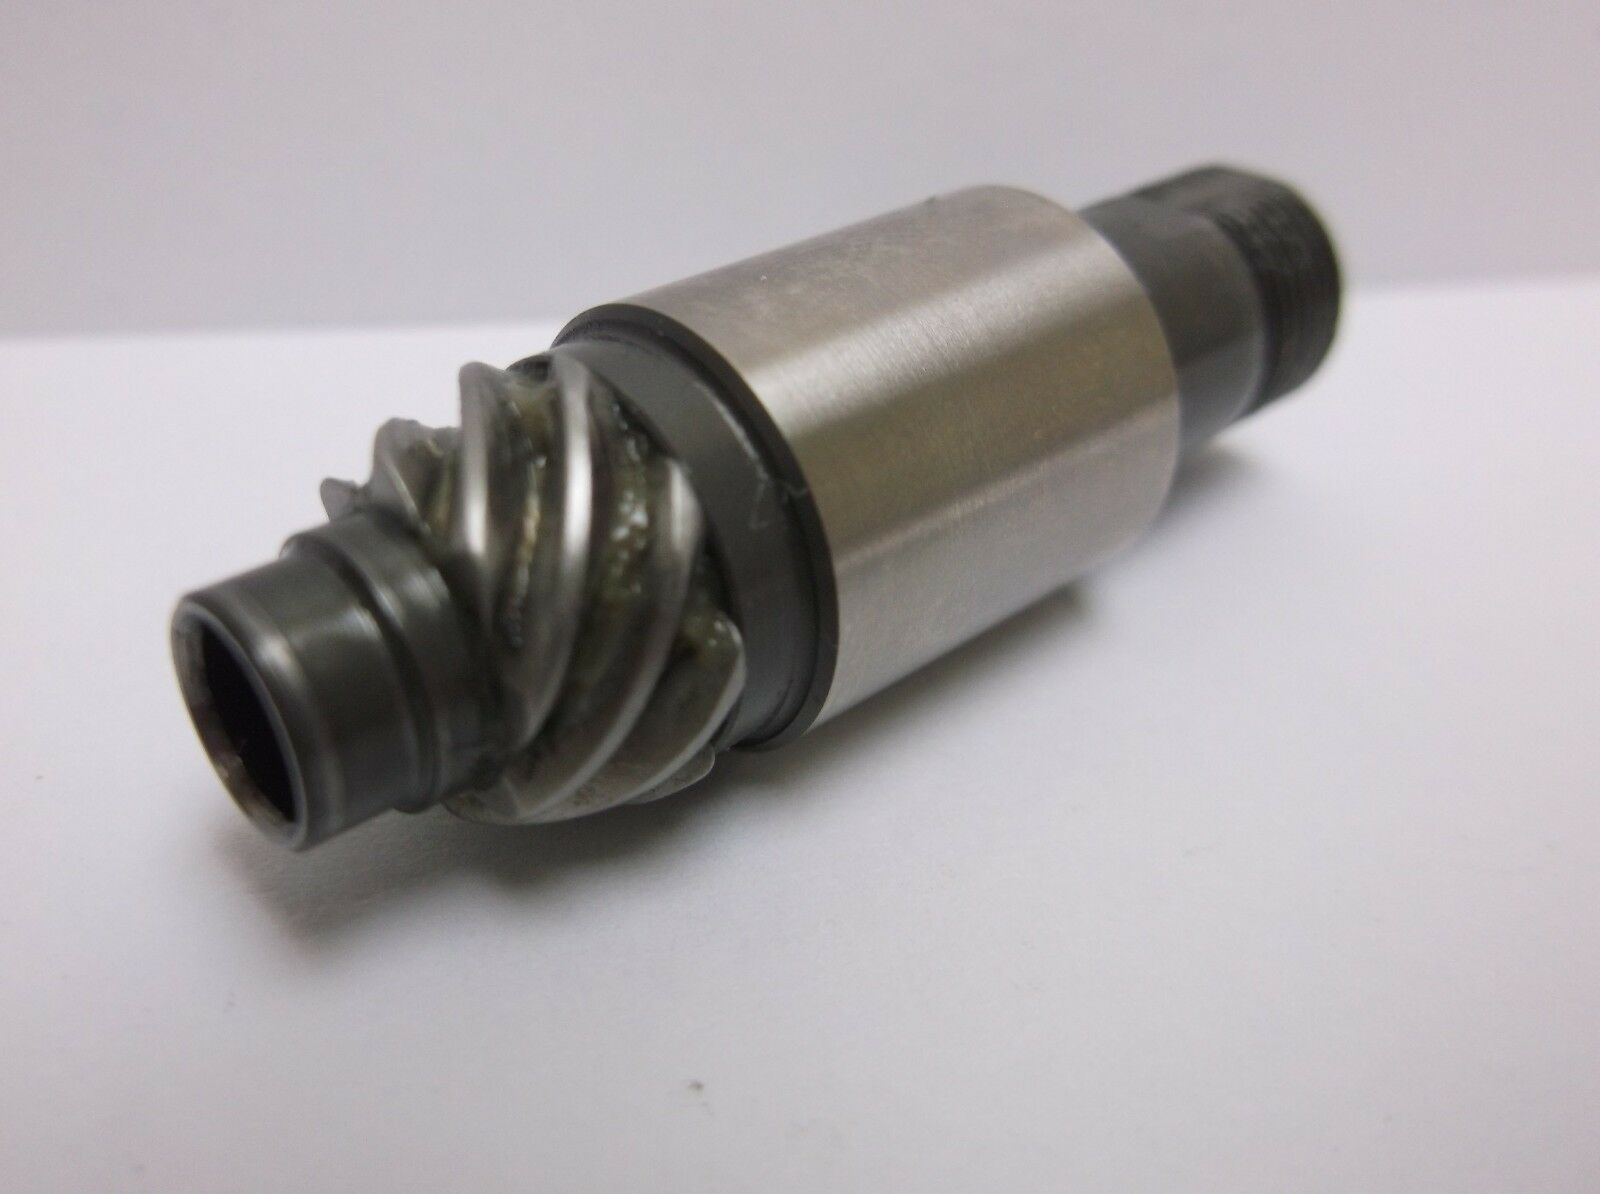 ANVÄNT ACCURATE SPINNING Rulle DEL - SR-12 Twinnspin - Pinion assemble